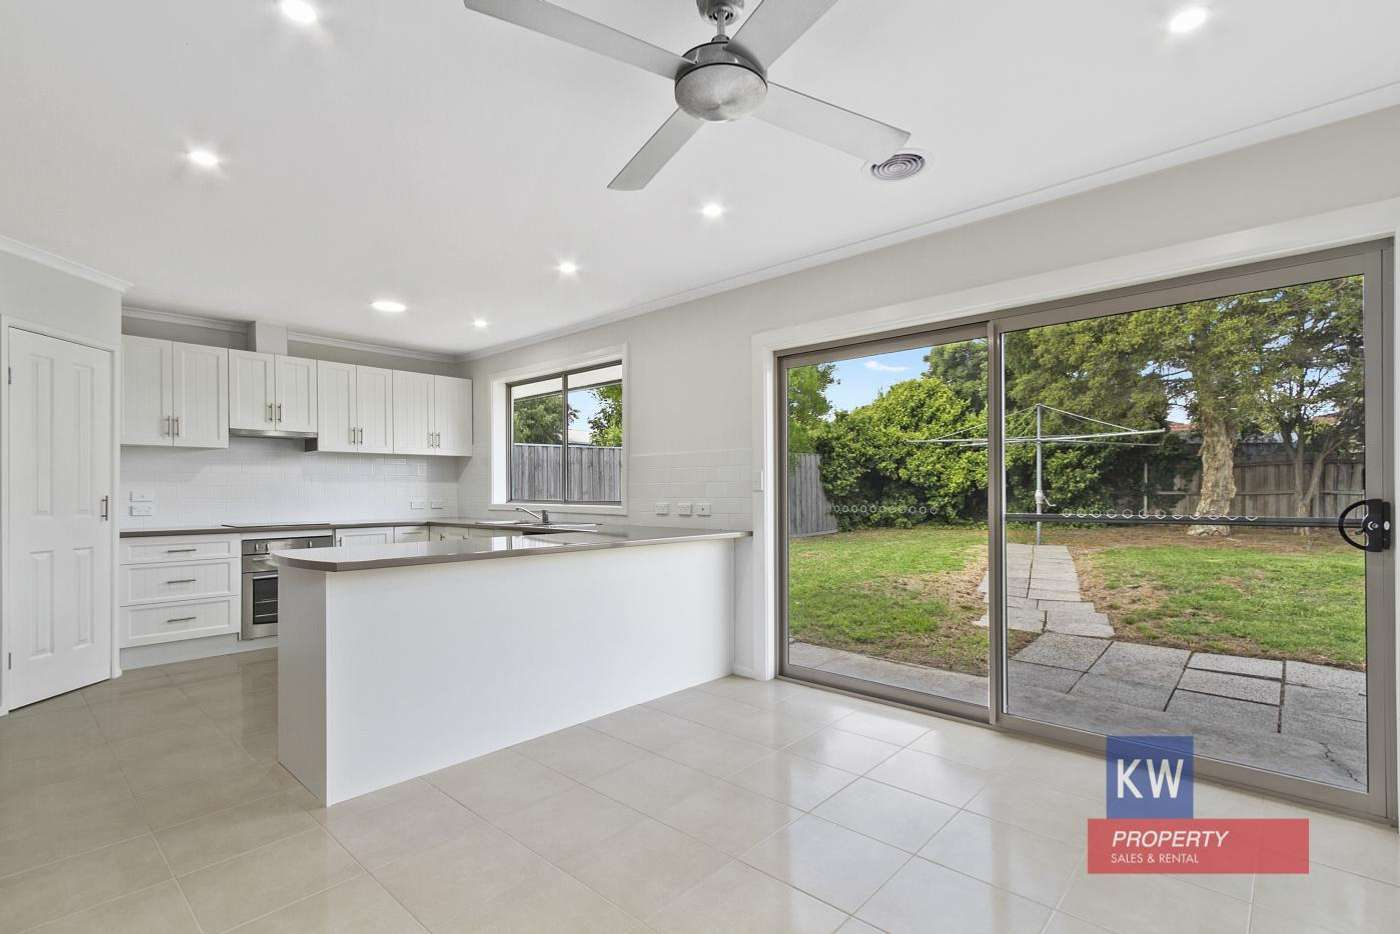 Sixth view of Homely house listing, 79 The Avenue, Morwell VIC 3840